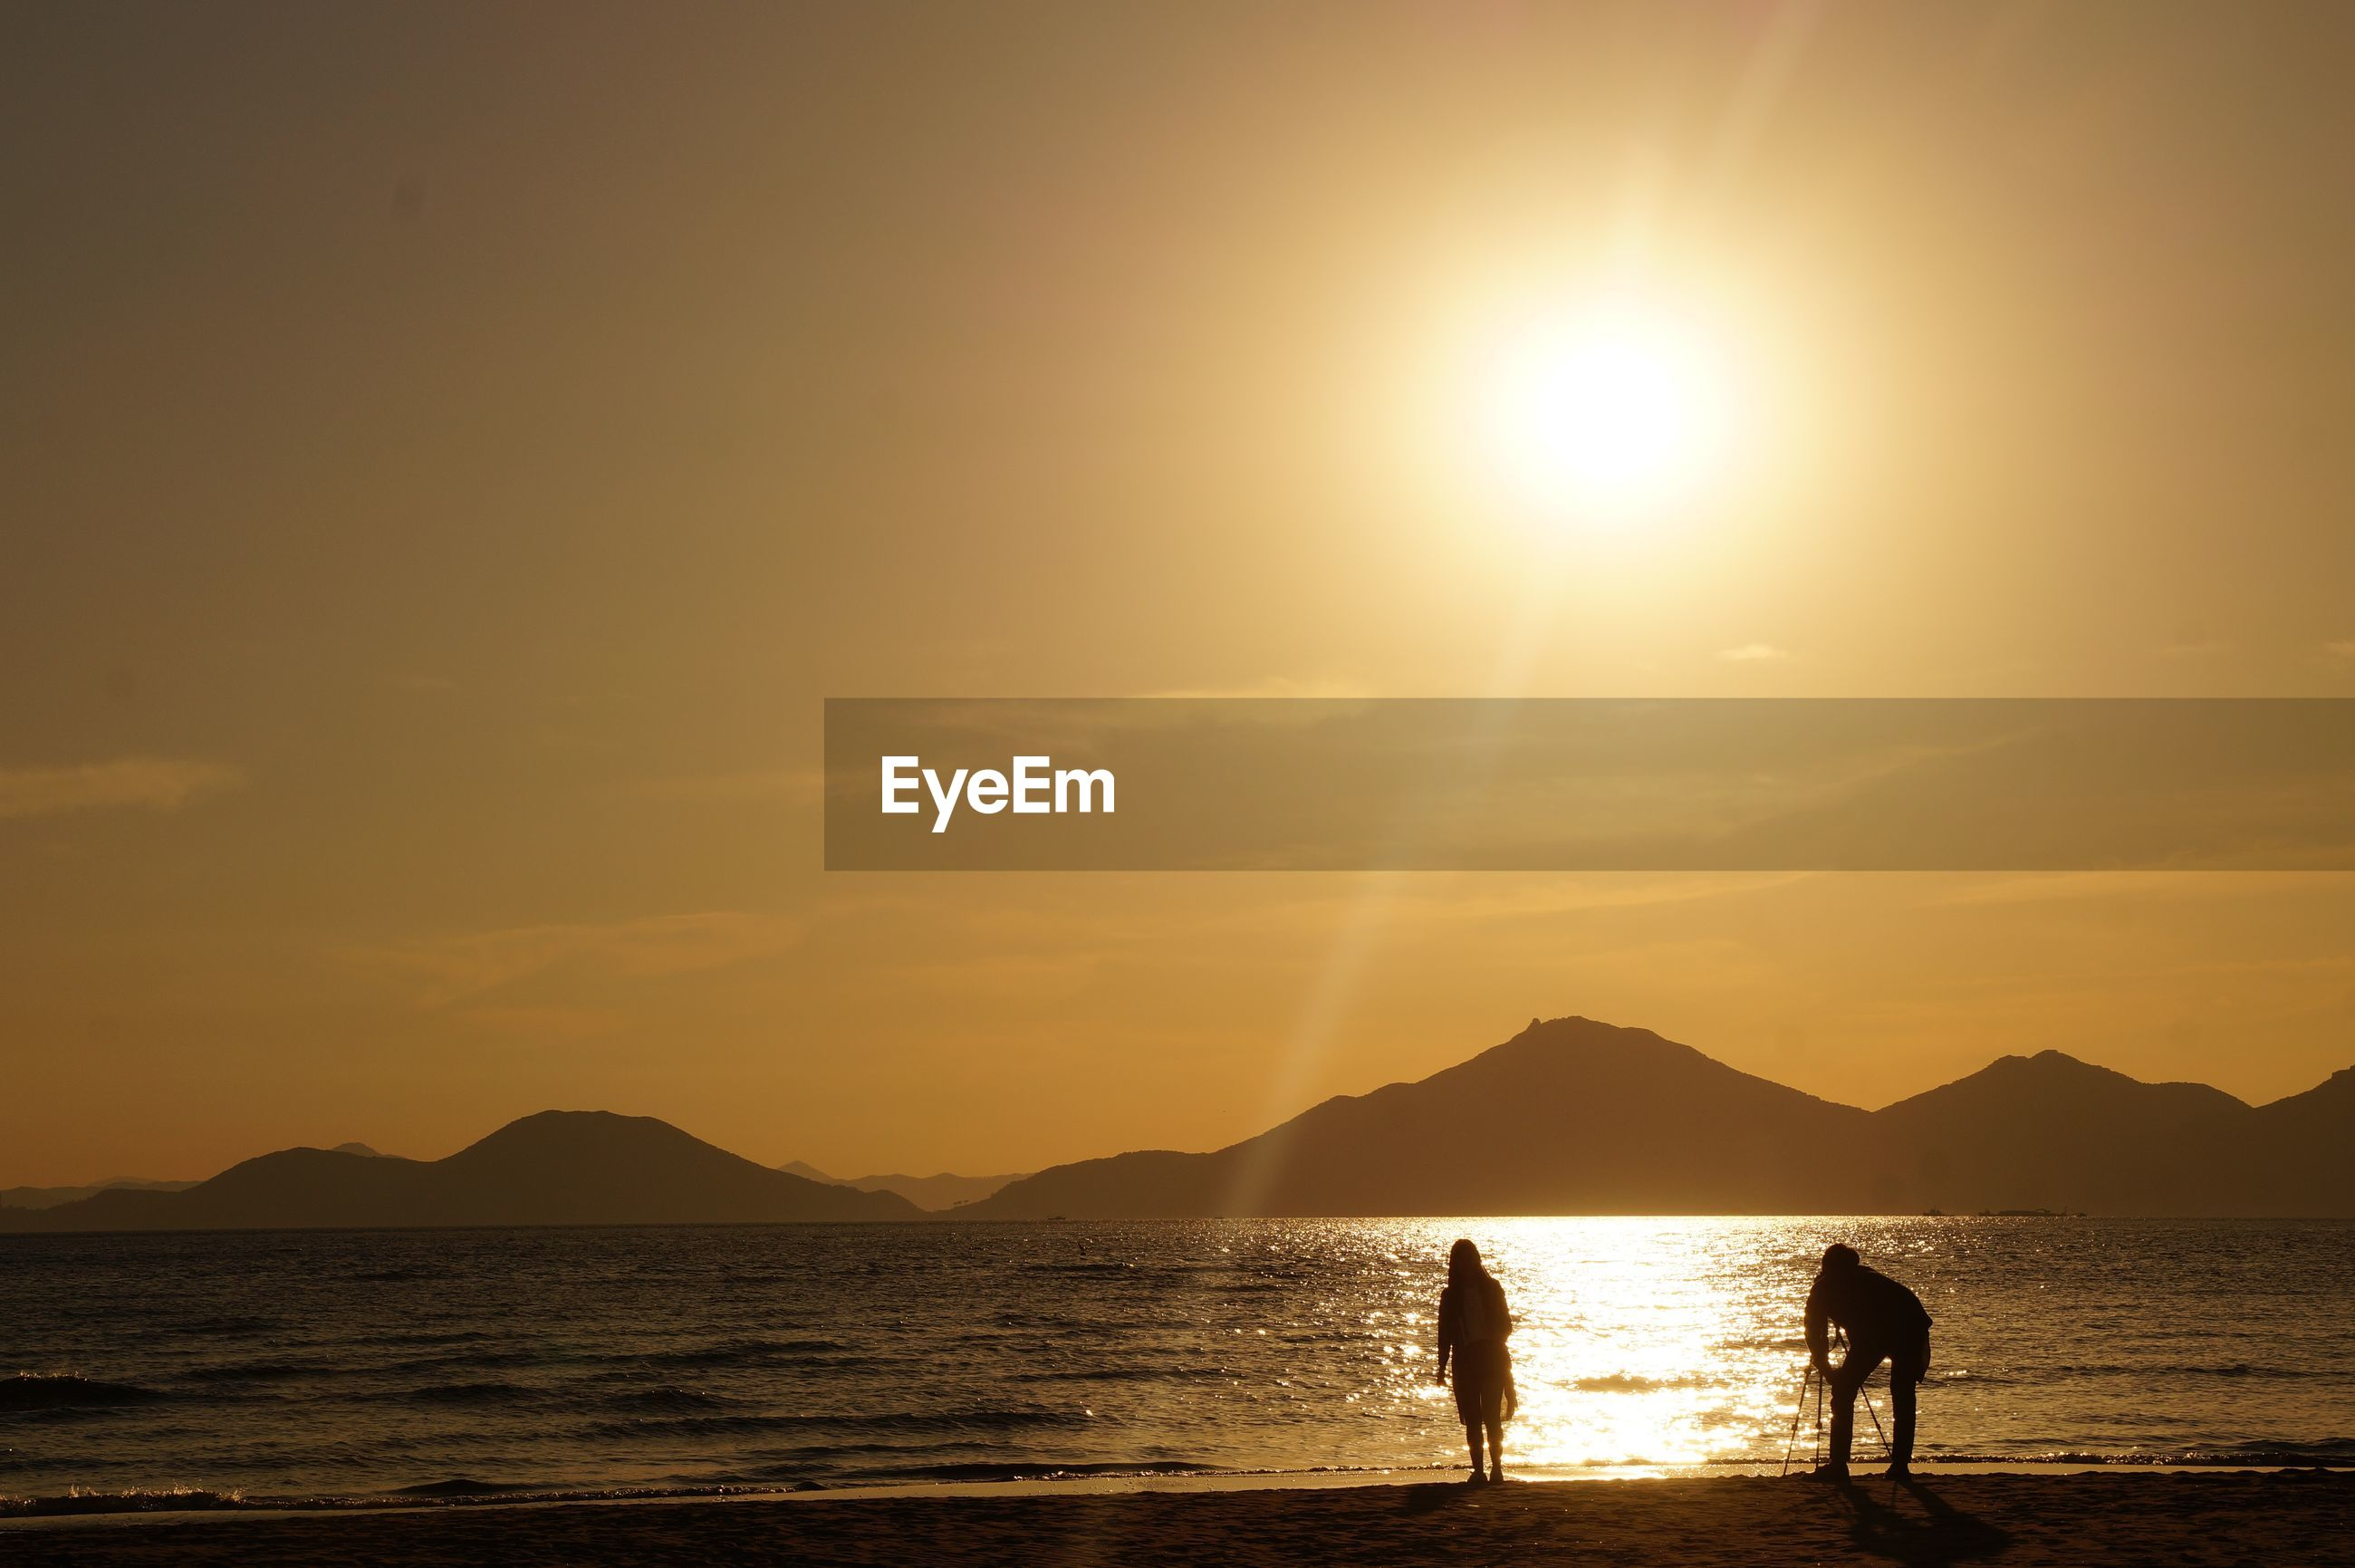 sunset, sun, silhouette, beauty in nature, nature, scenics, sea, water, sky, two people, sunbeam, real people, sunlight, beach, leisure activity, tranquility, lifestyles, tranquil scene, men, outdoors, horizon over water, togetherness, vacations, mountain, people